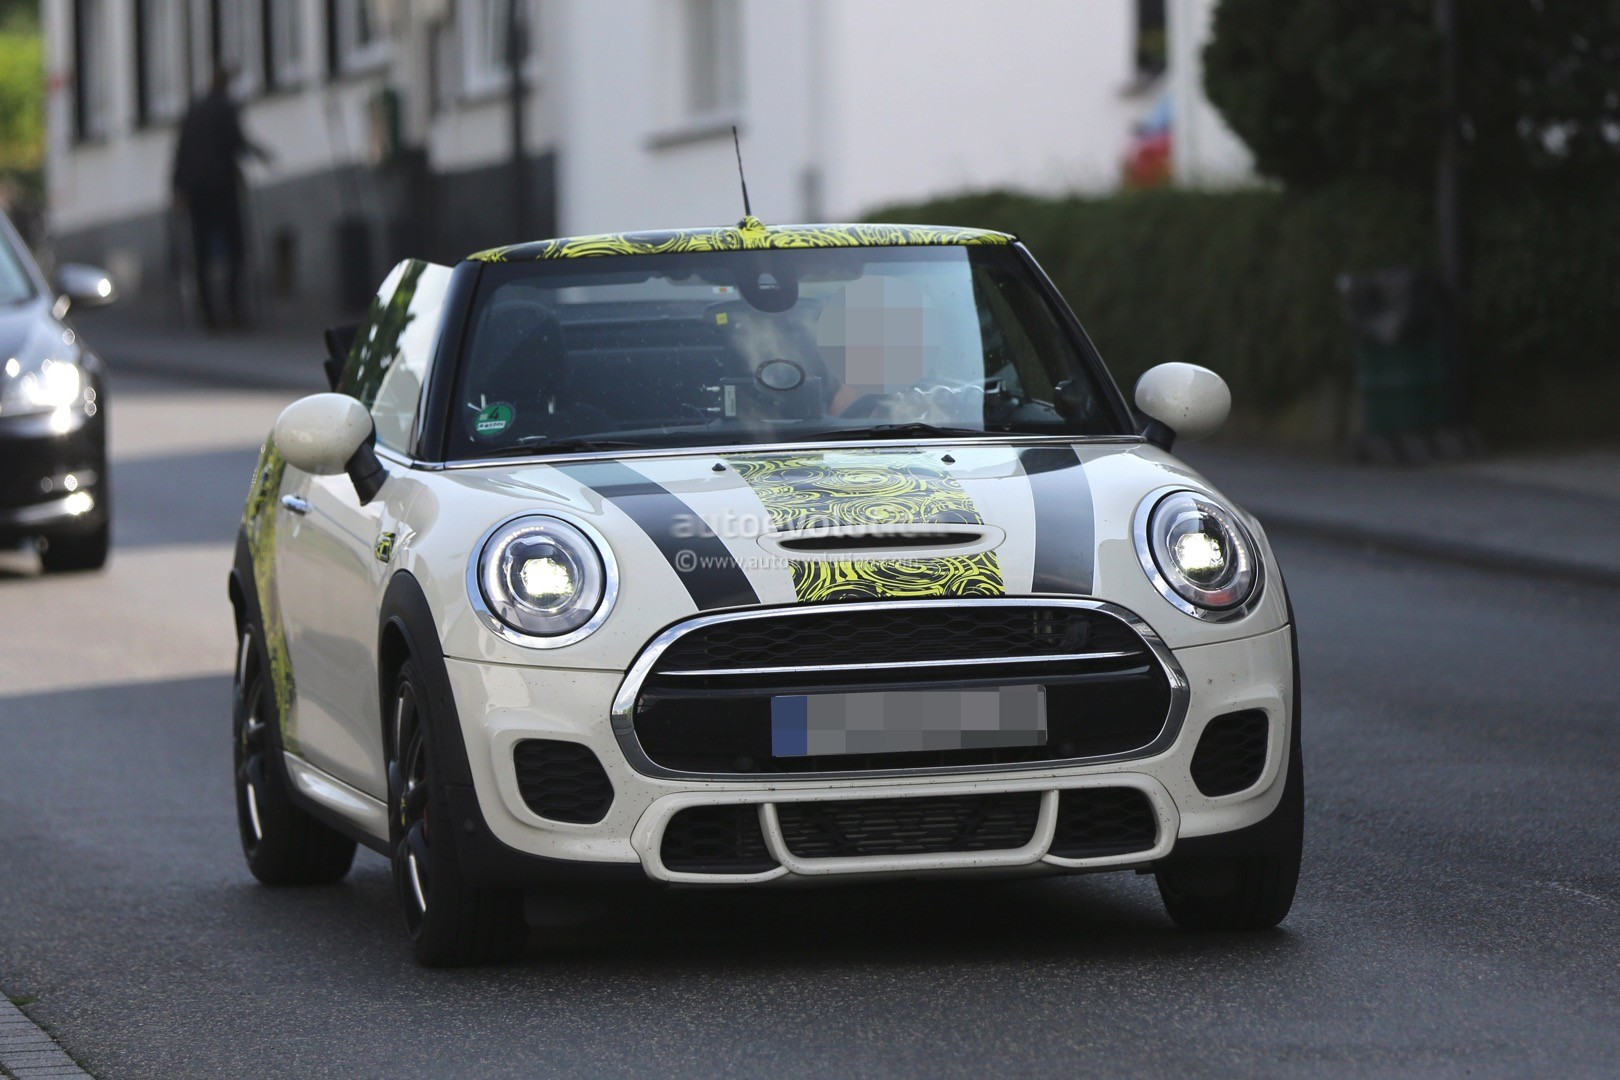 Mini Cooper Tires >> 2016 MINI Cooper S Convertible Spied with the Top Down, Nearly Undisguised - autoevolution